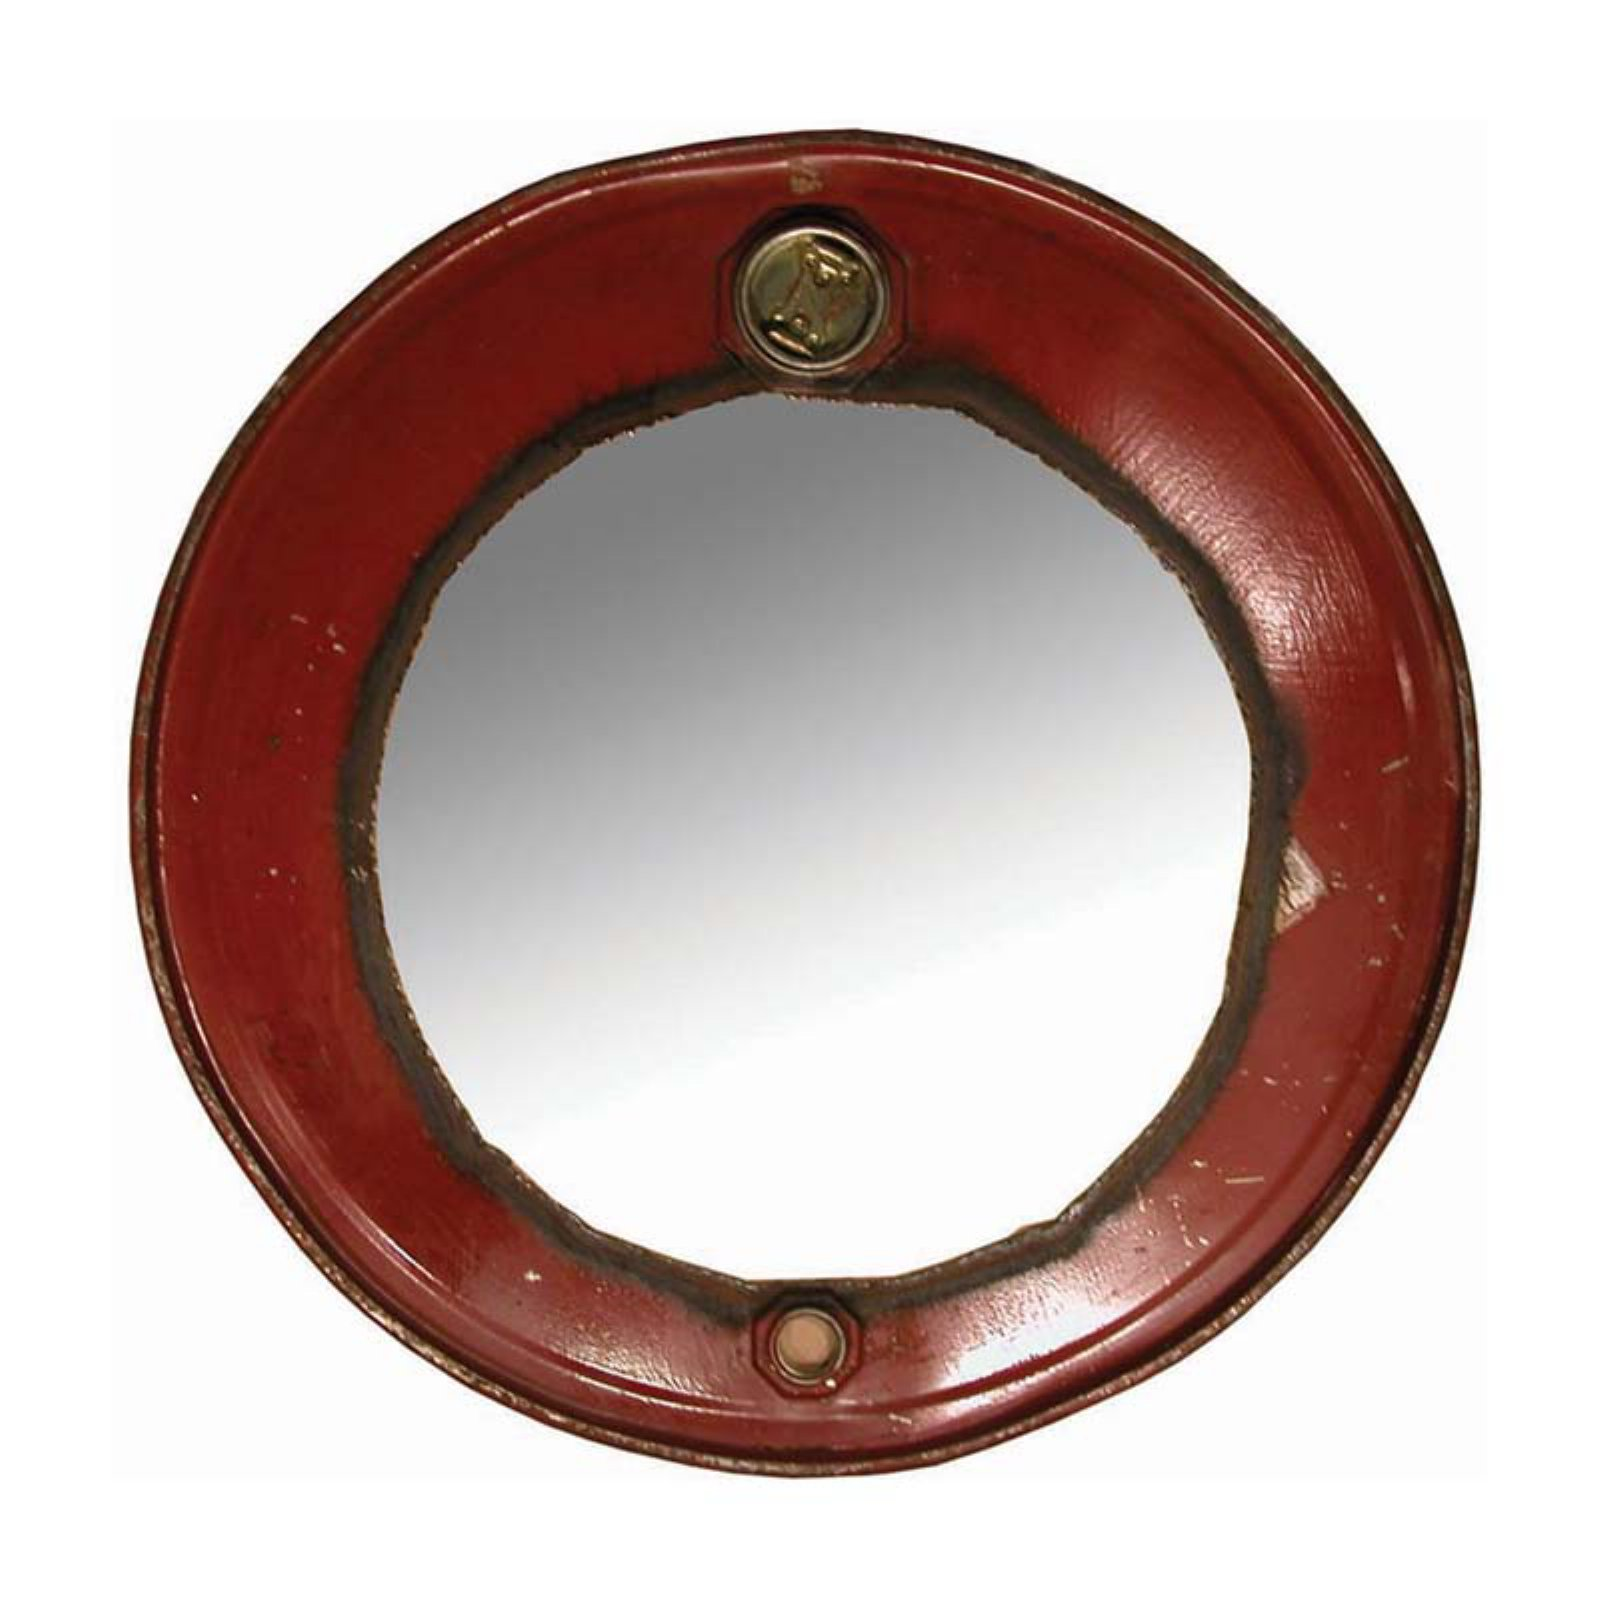 Ruby Steam Punk Barrel Wall Mirror - 23W x 23H in.